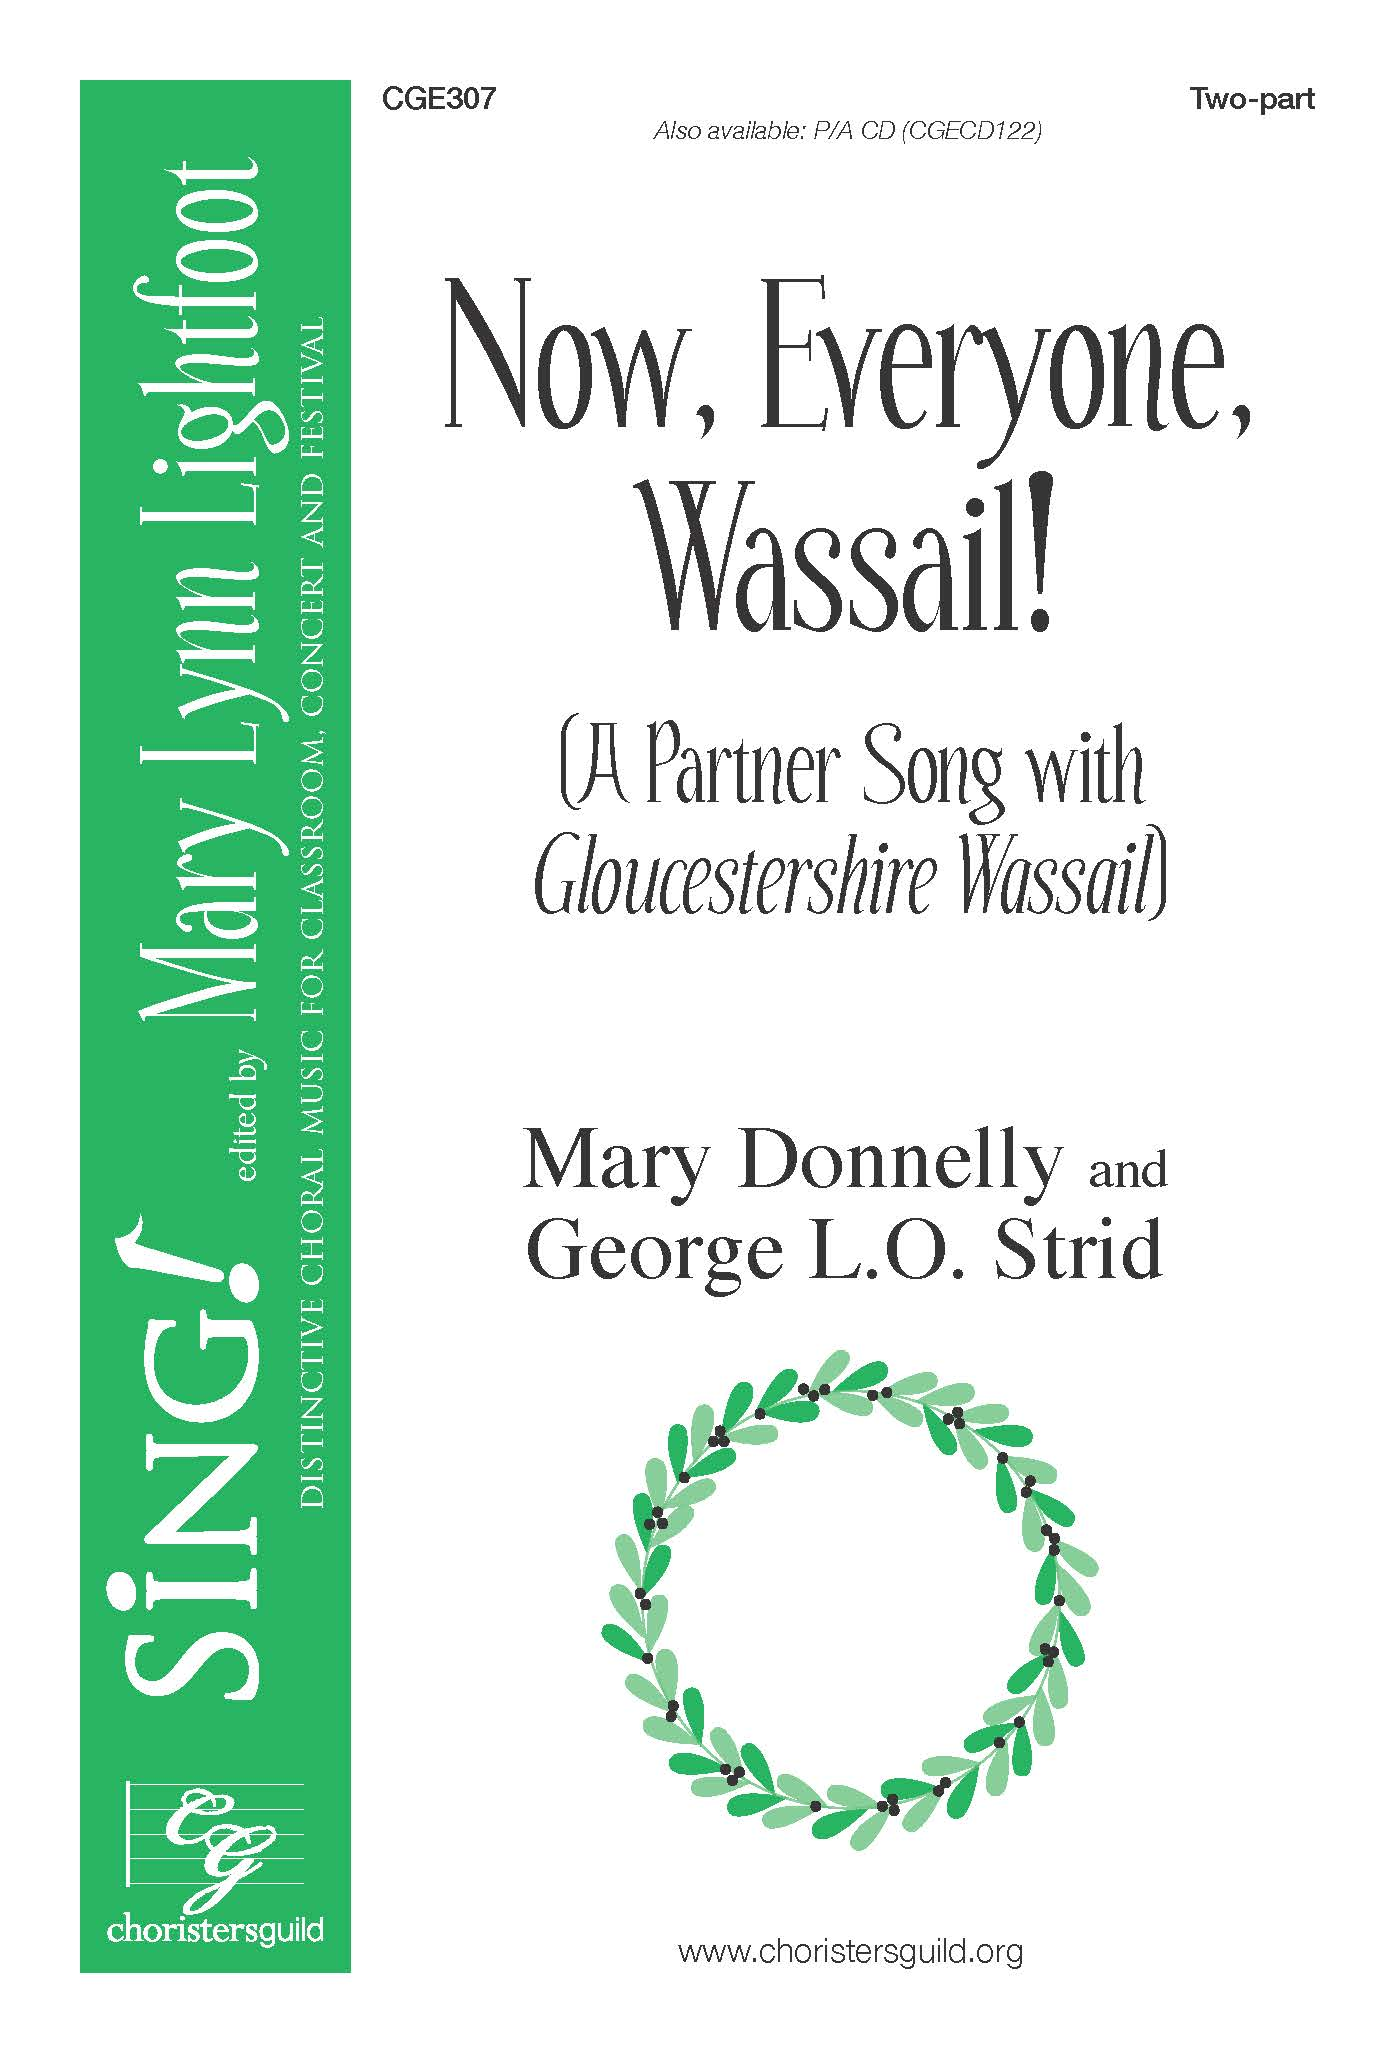 Now, Everyone, Wassail! - Two-part